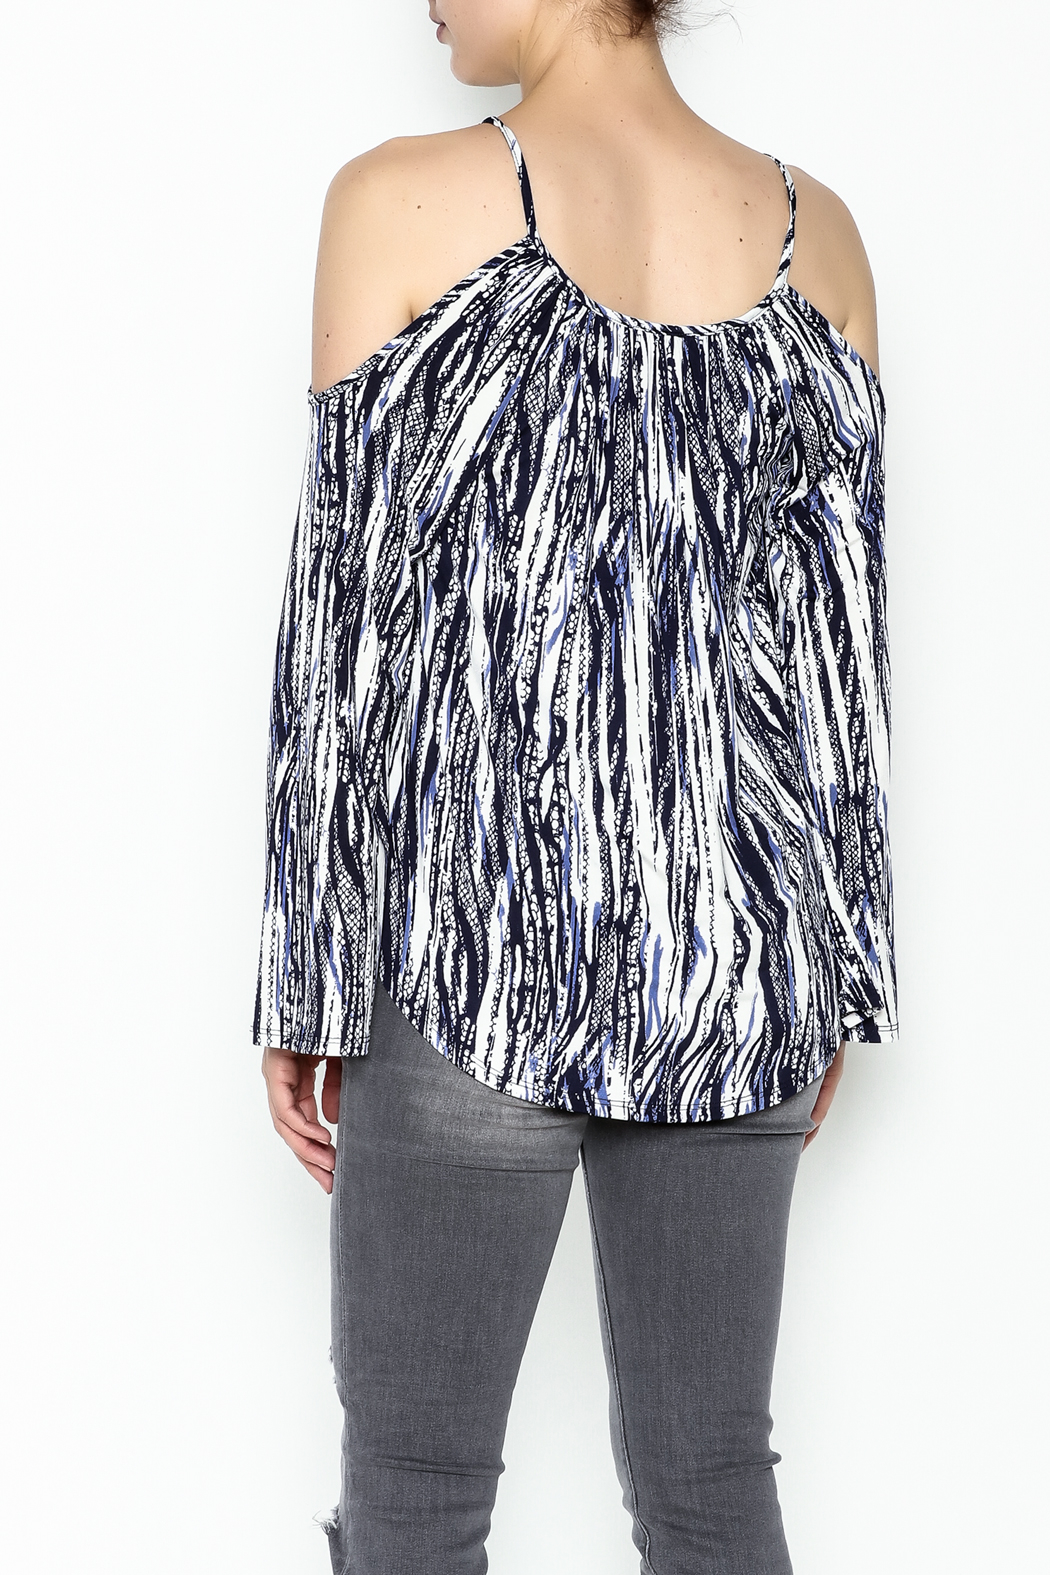 Veronica M Amy Cold Shoulder Top - Back Cropped Image